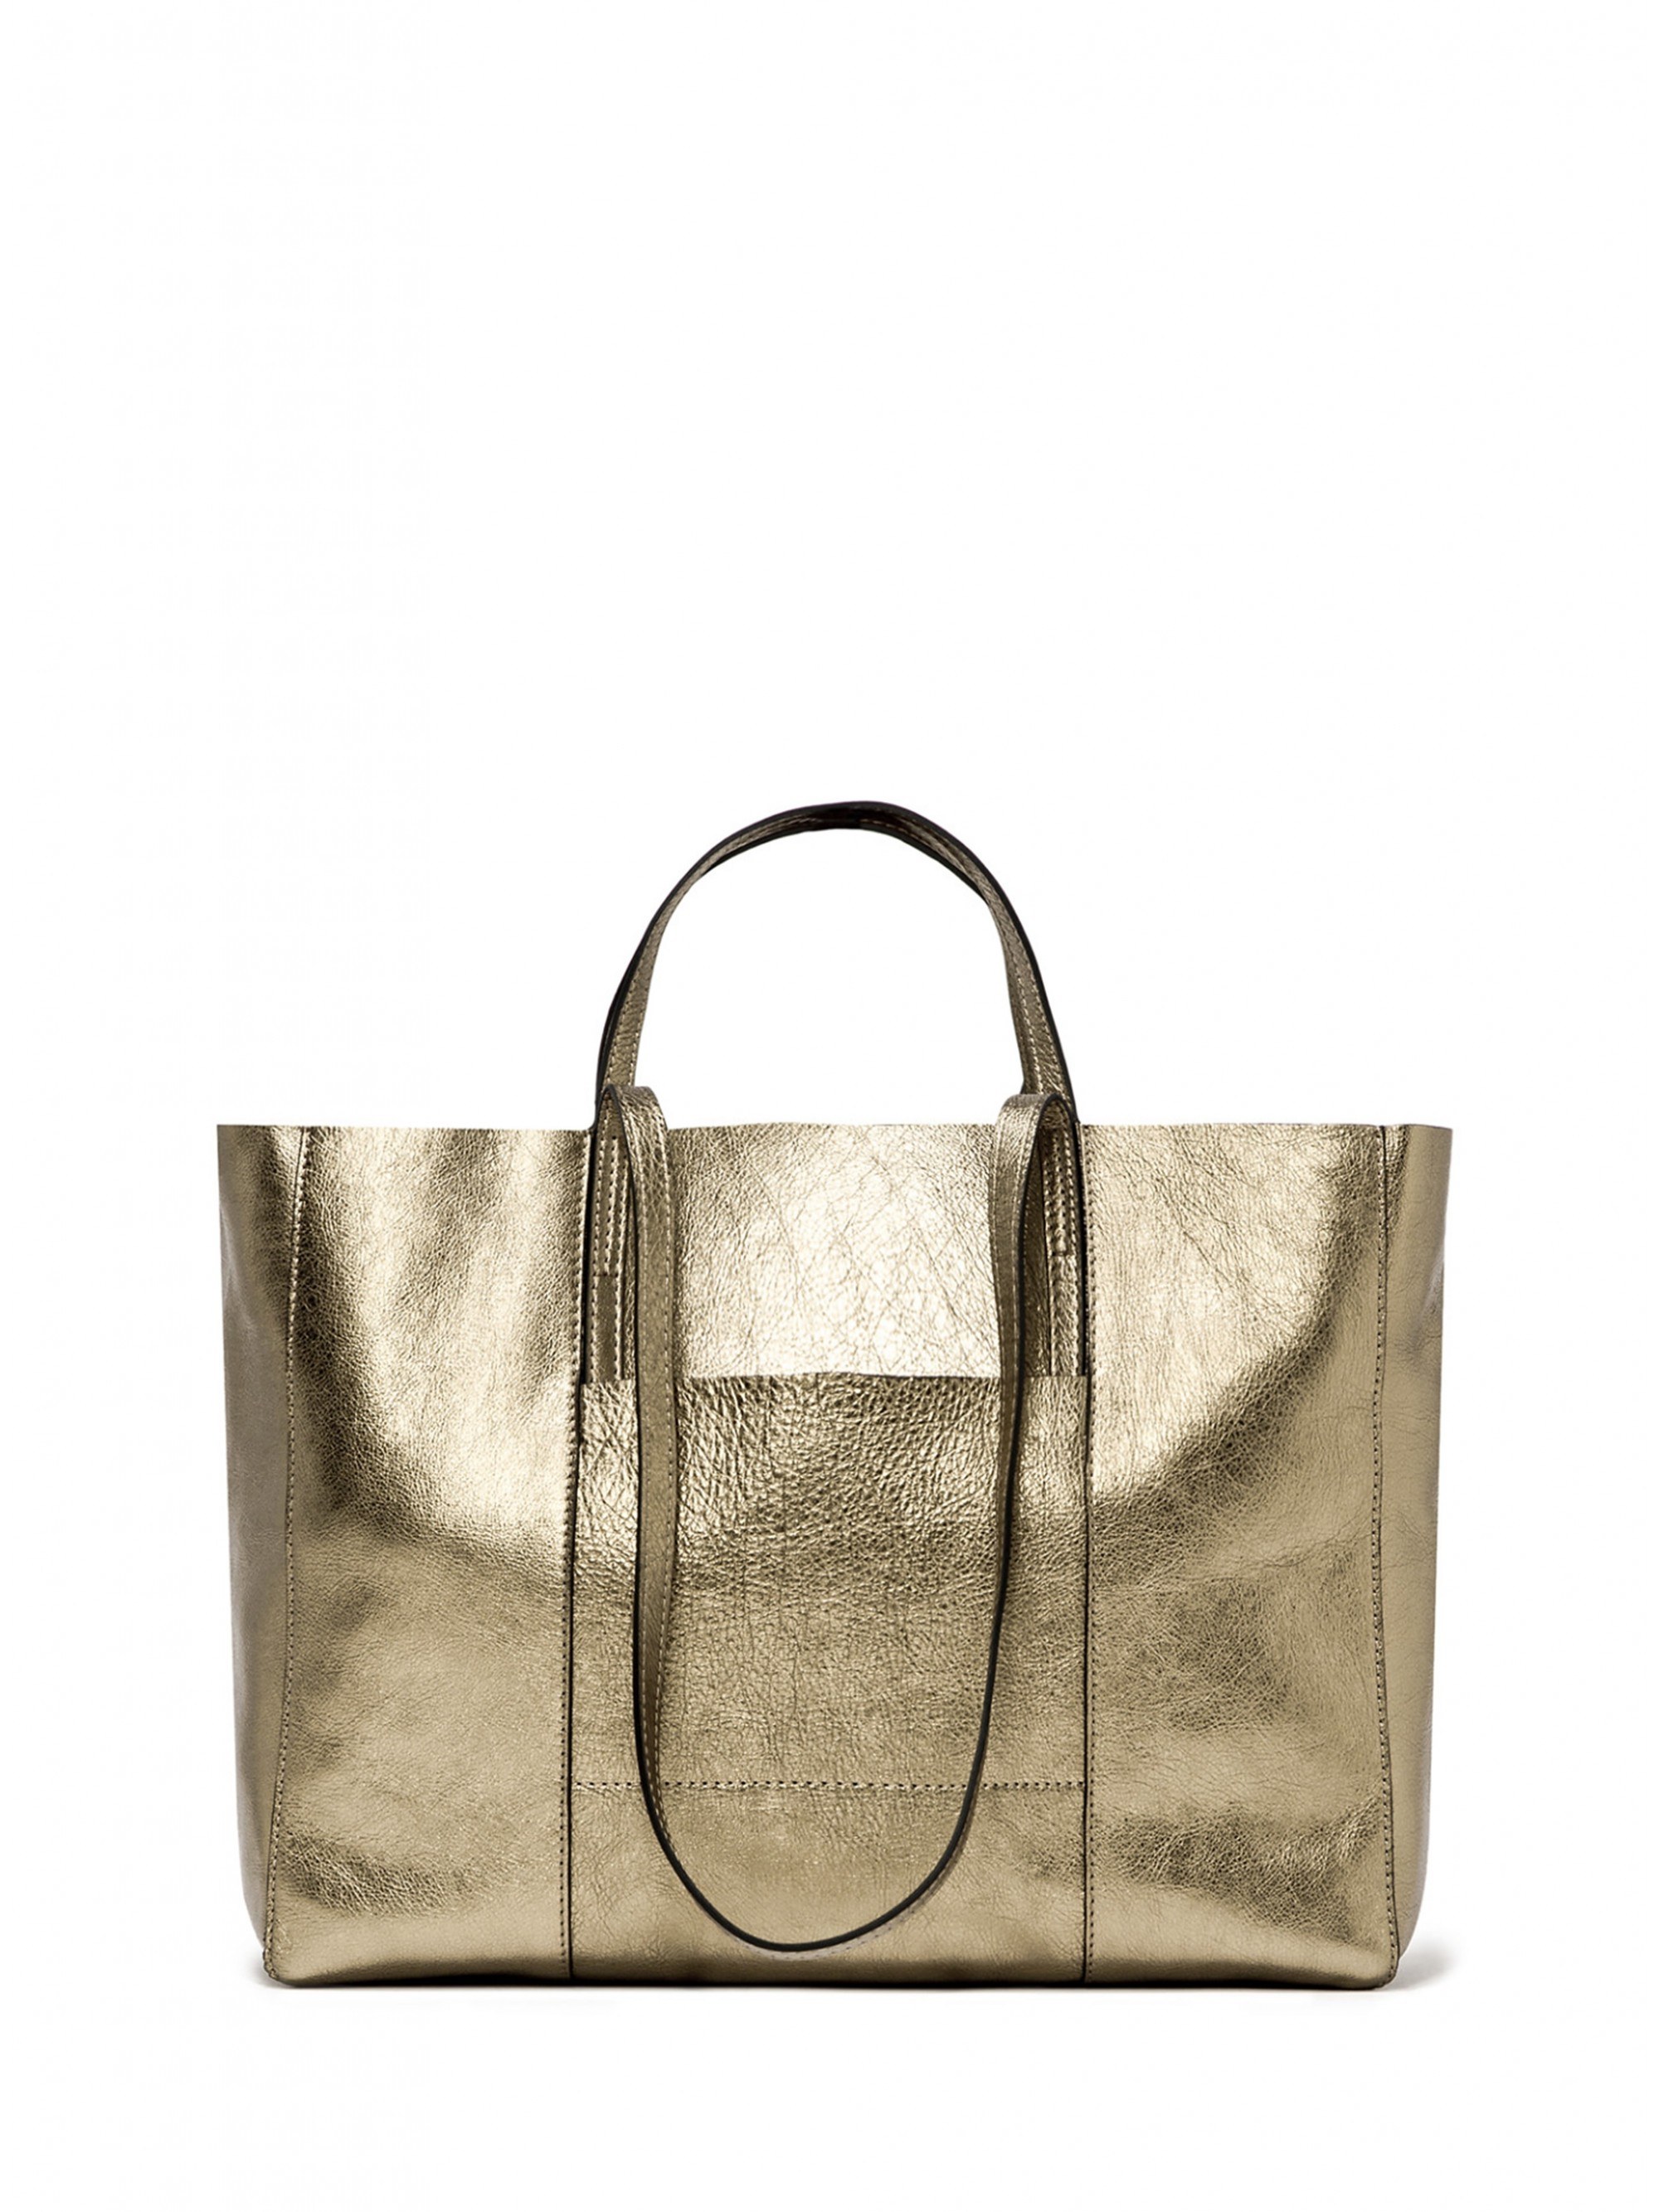 2431172b5c6 Home; Gianni Chiarini Superlight Shopping Bag-Gold. Tap to expand